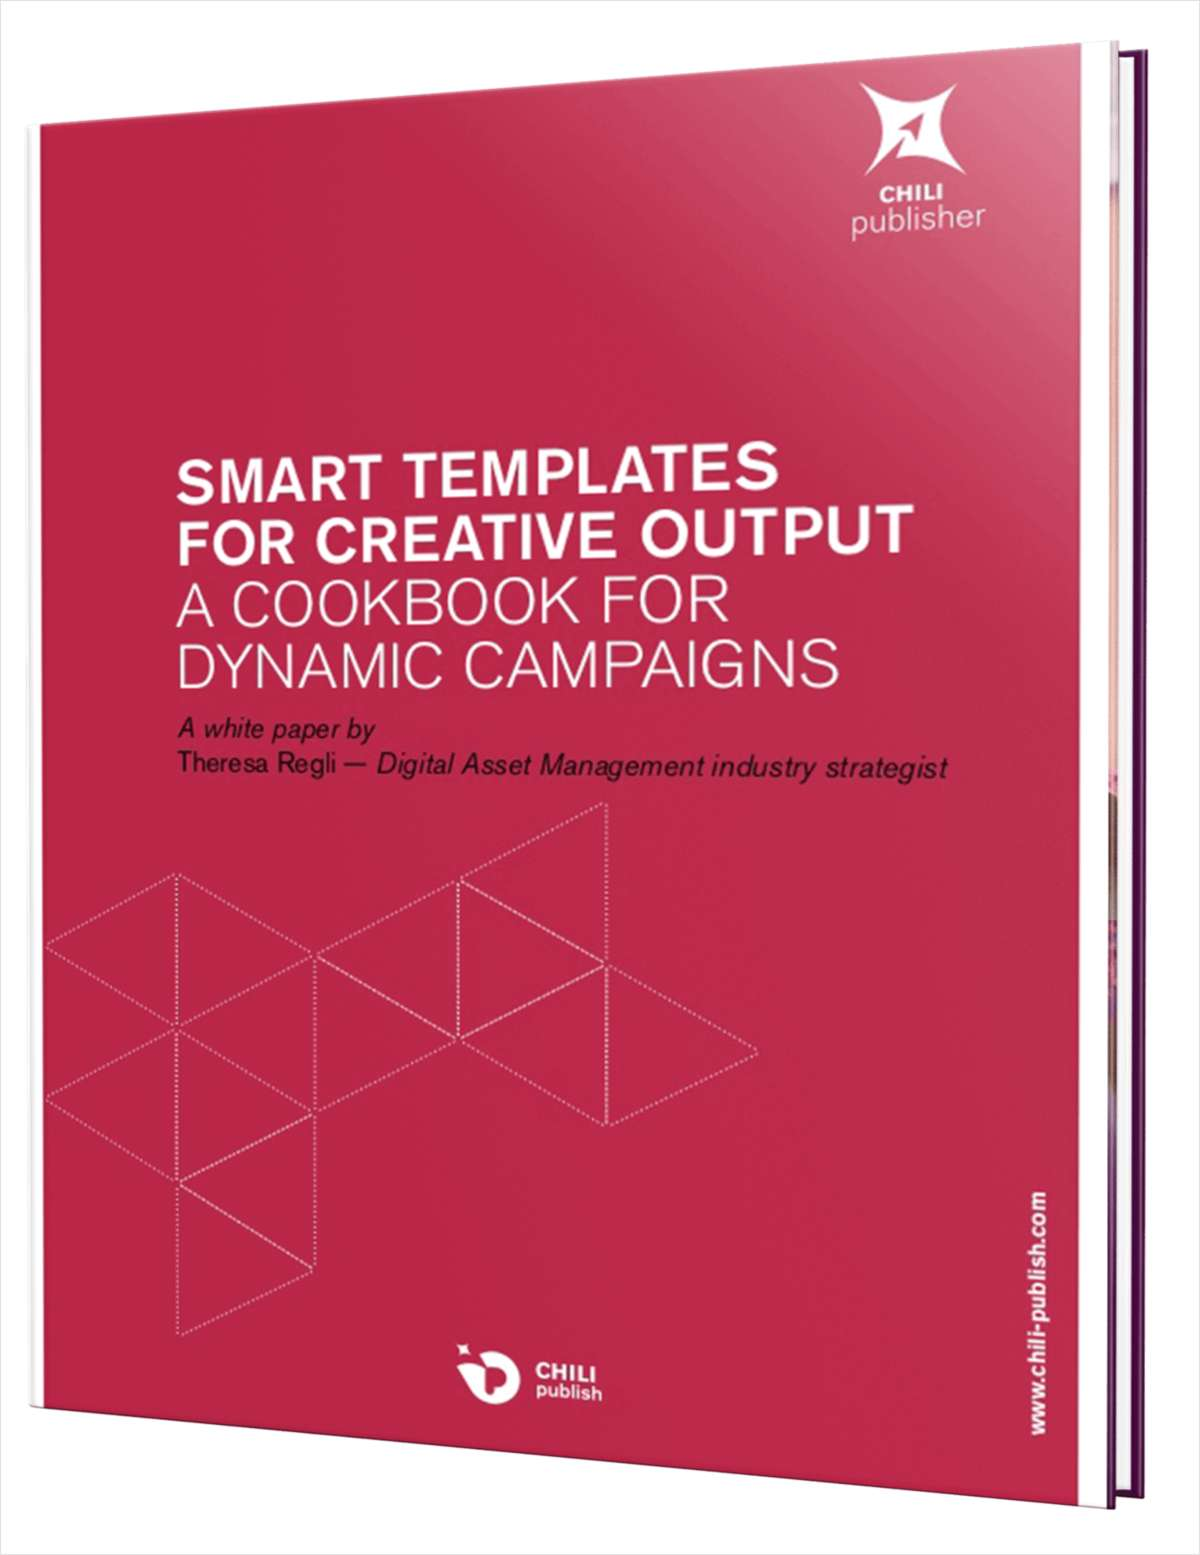 Smart Templates For Creative Output: A Cookbook For Dynamic Marketing Campaigns